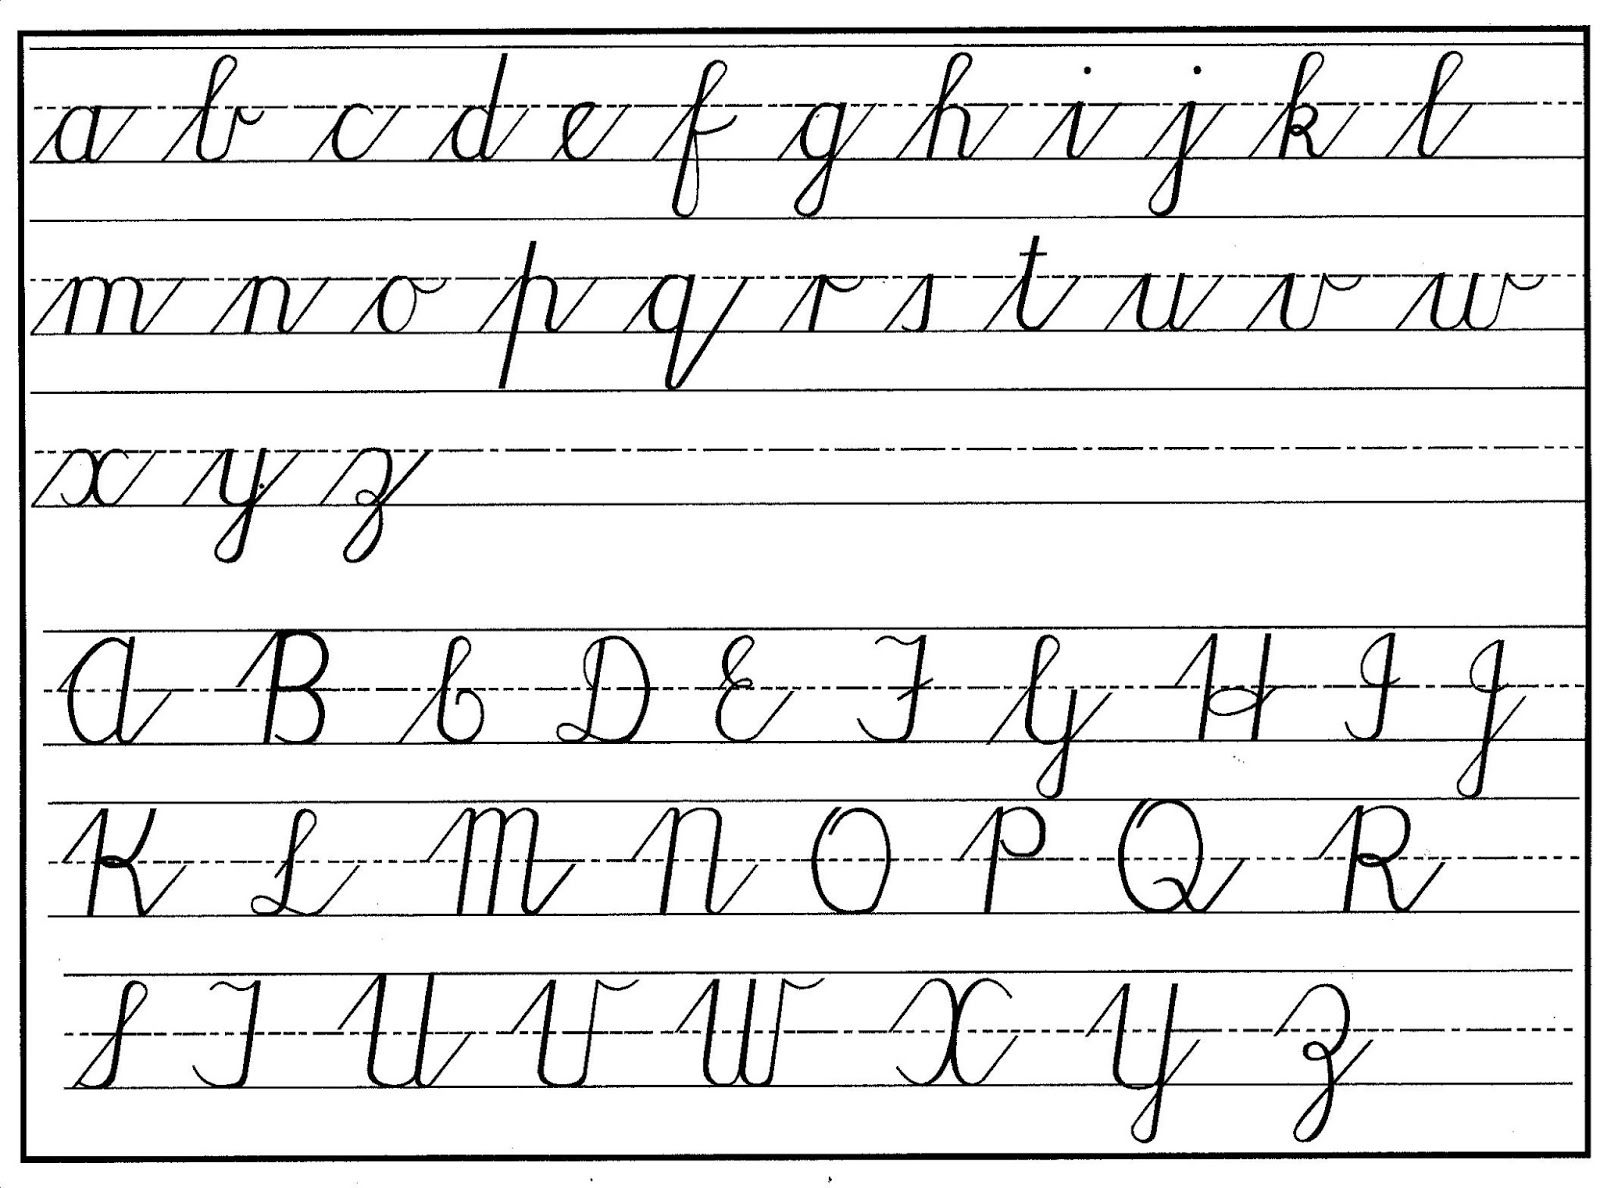 Alphabet Worksheets Free Kids Printables The Worksheets Come In Packs For Each Letter Of The